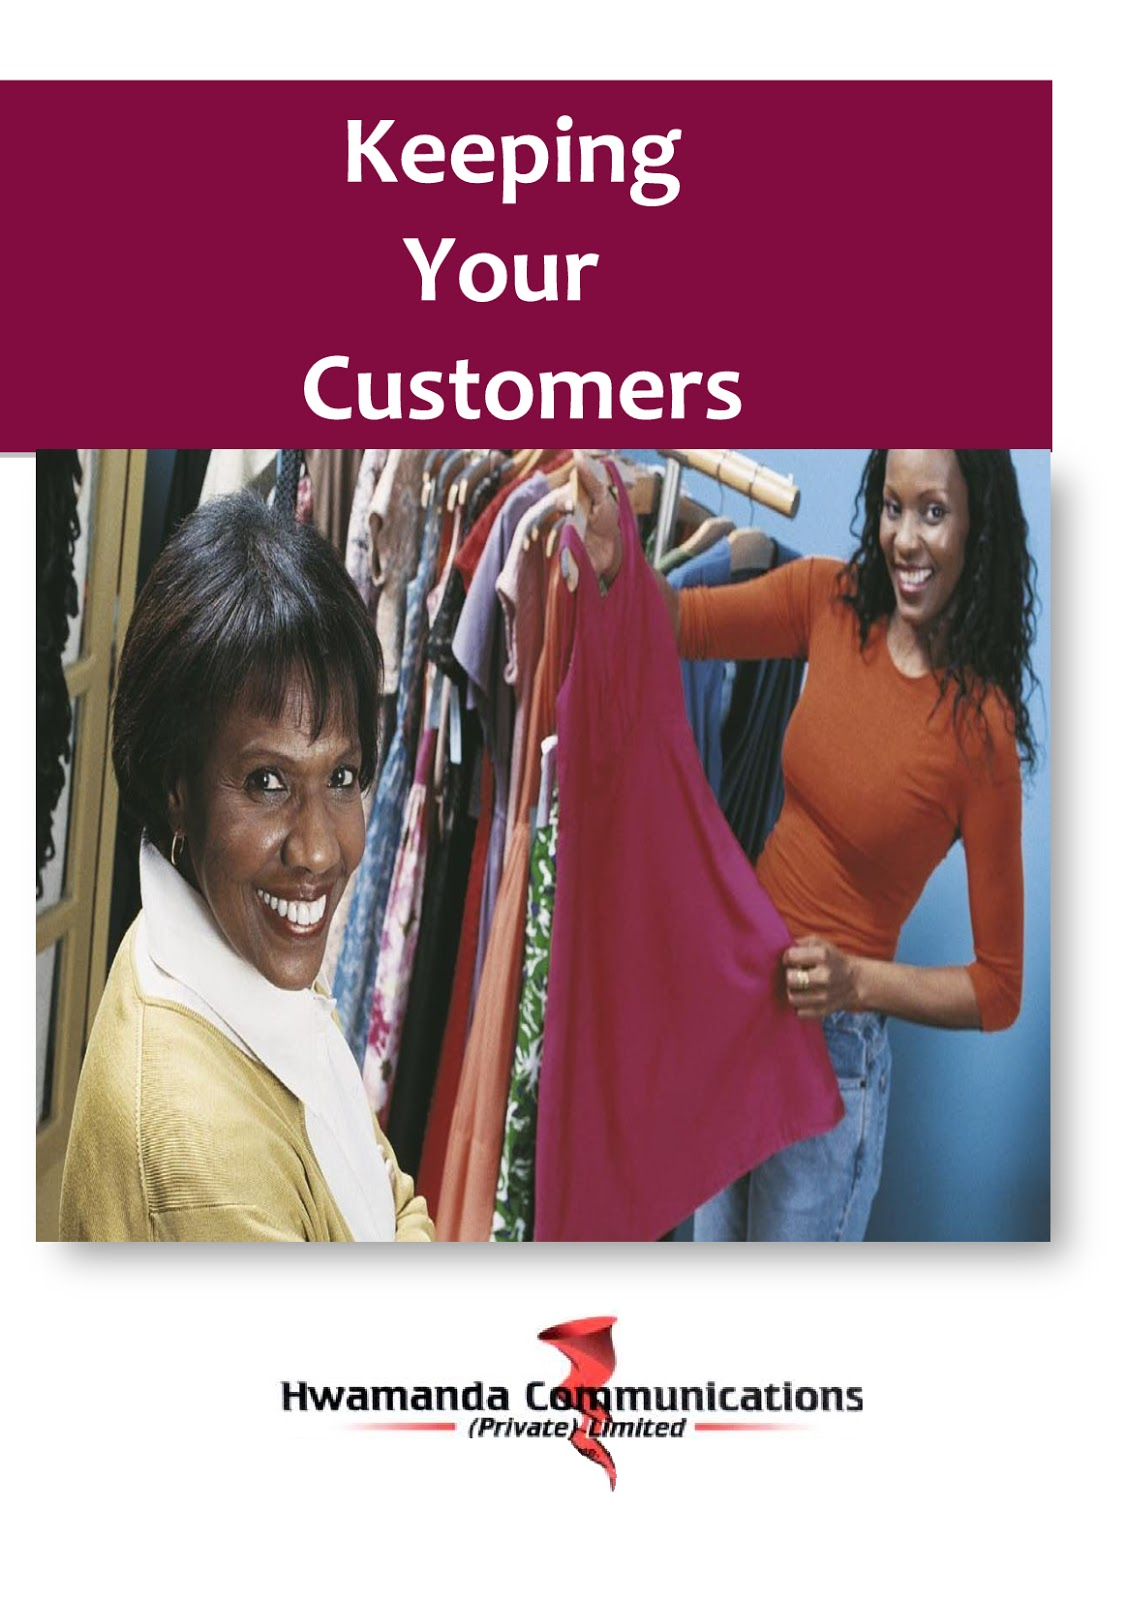 KEEPING YOUR CUSTOMER